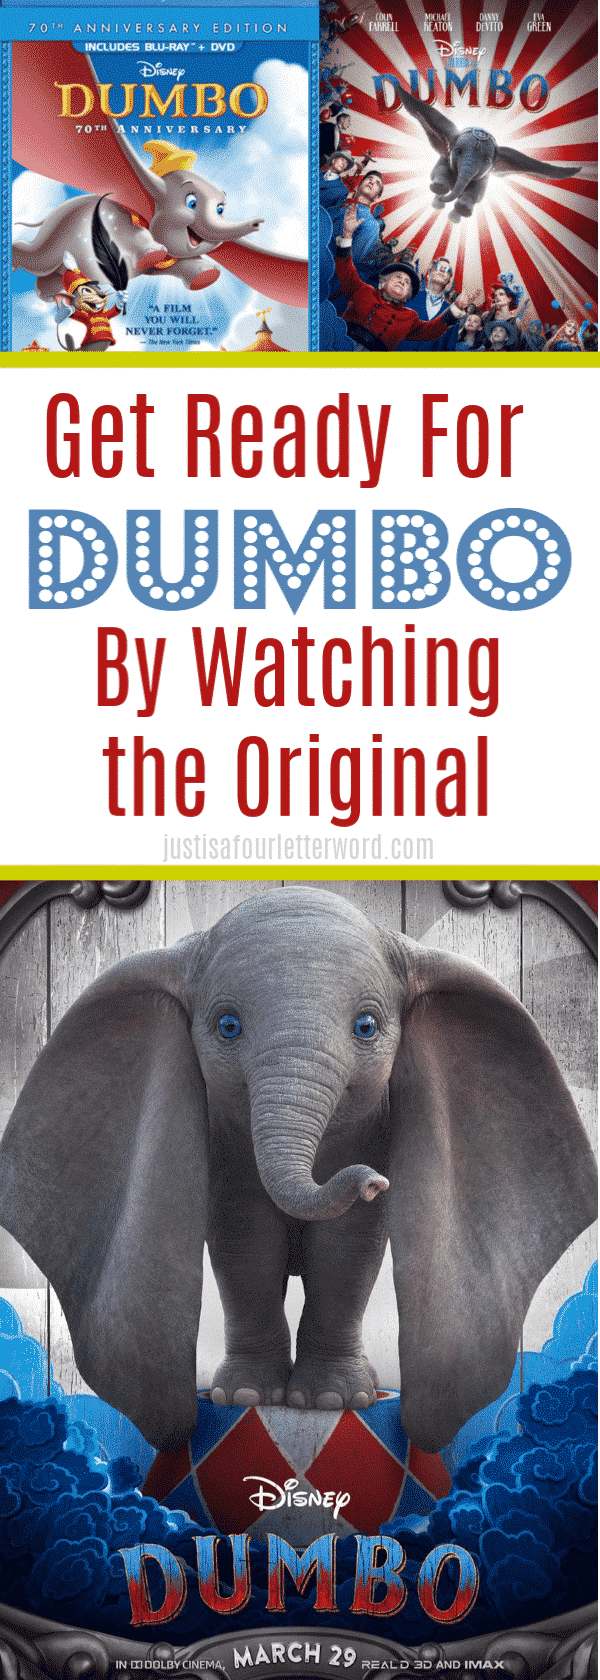 Get Ready for the New Dumbo Movie by Watching the Original Animated Dumbo!